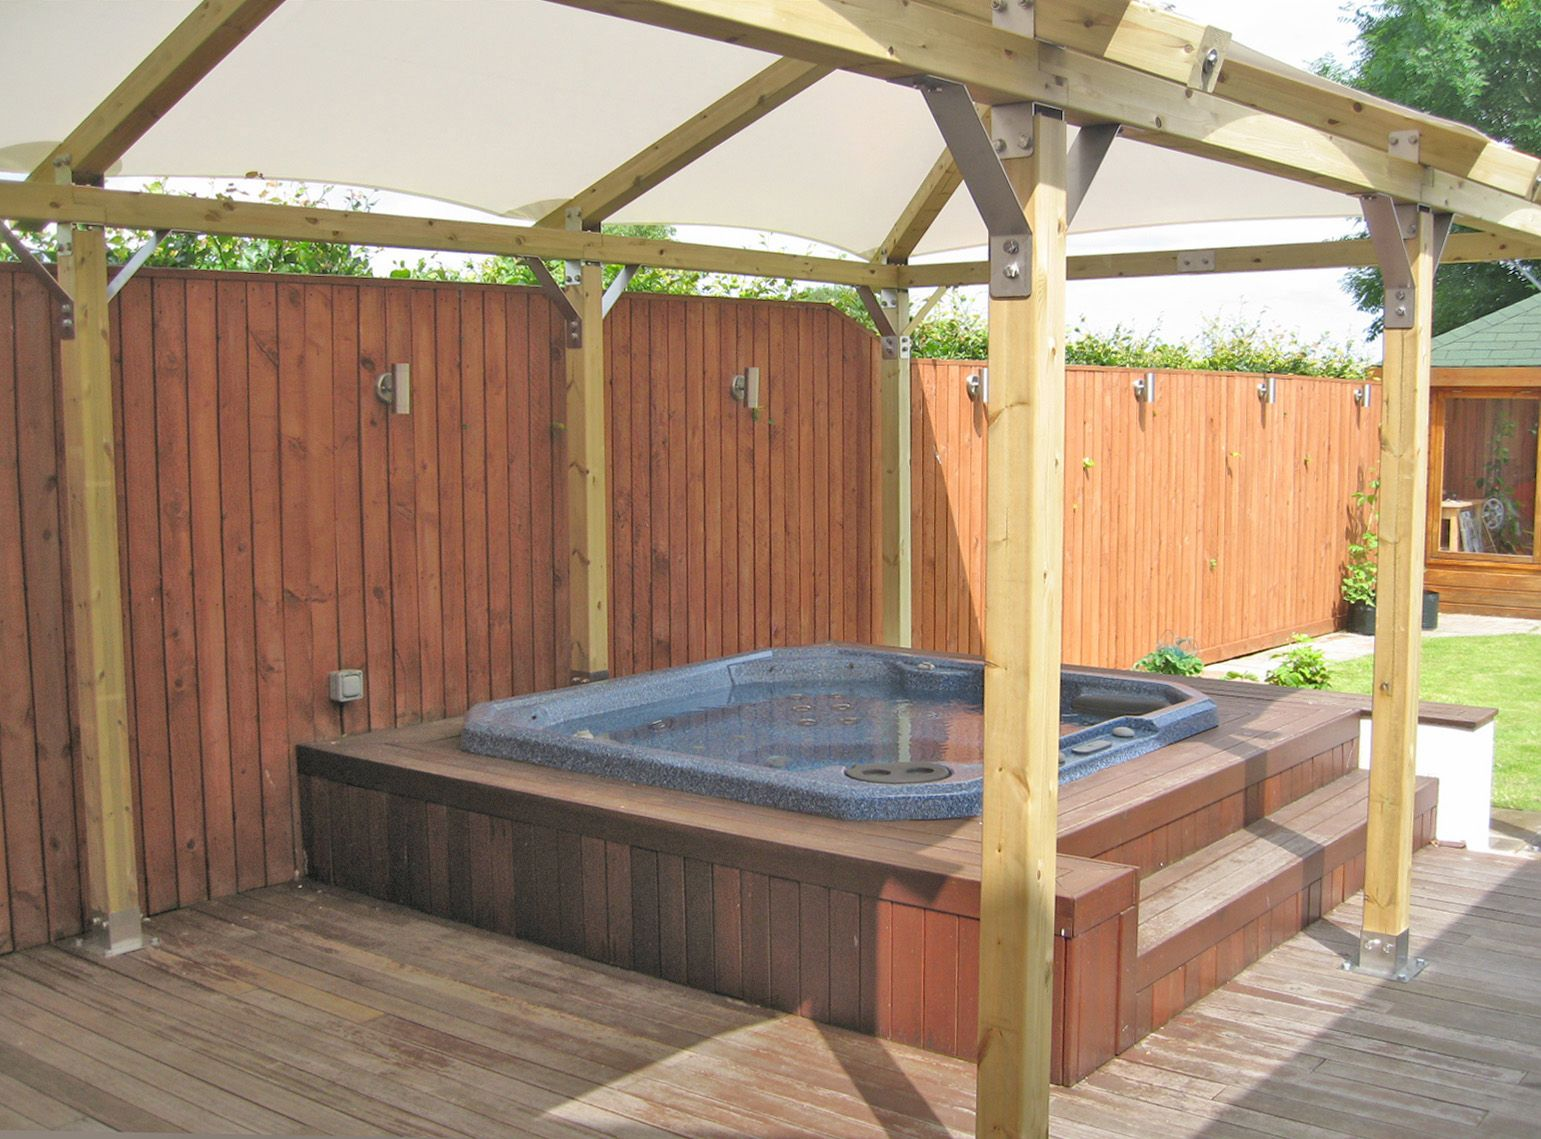 Diy spa enclosure google search decking and hot tub for Hot tub enclosures plans